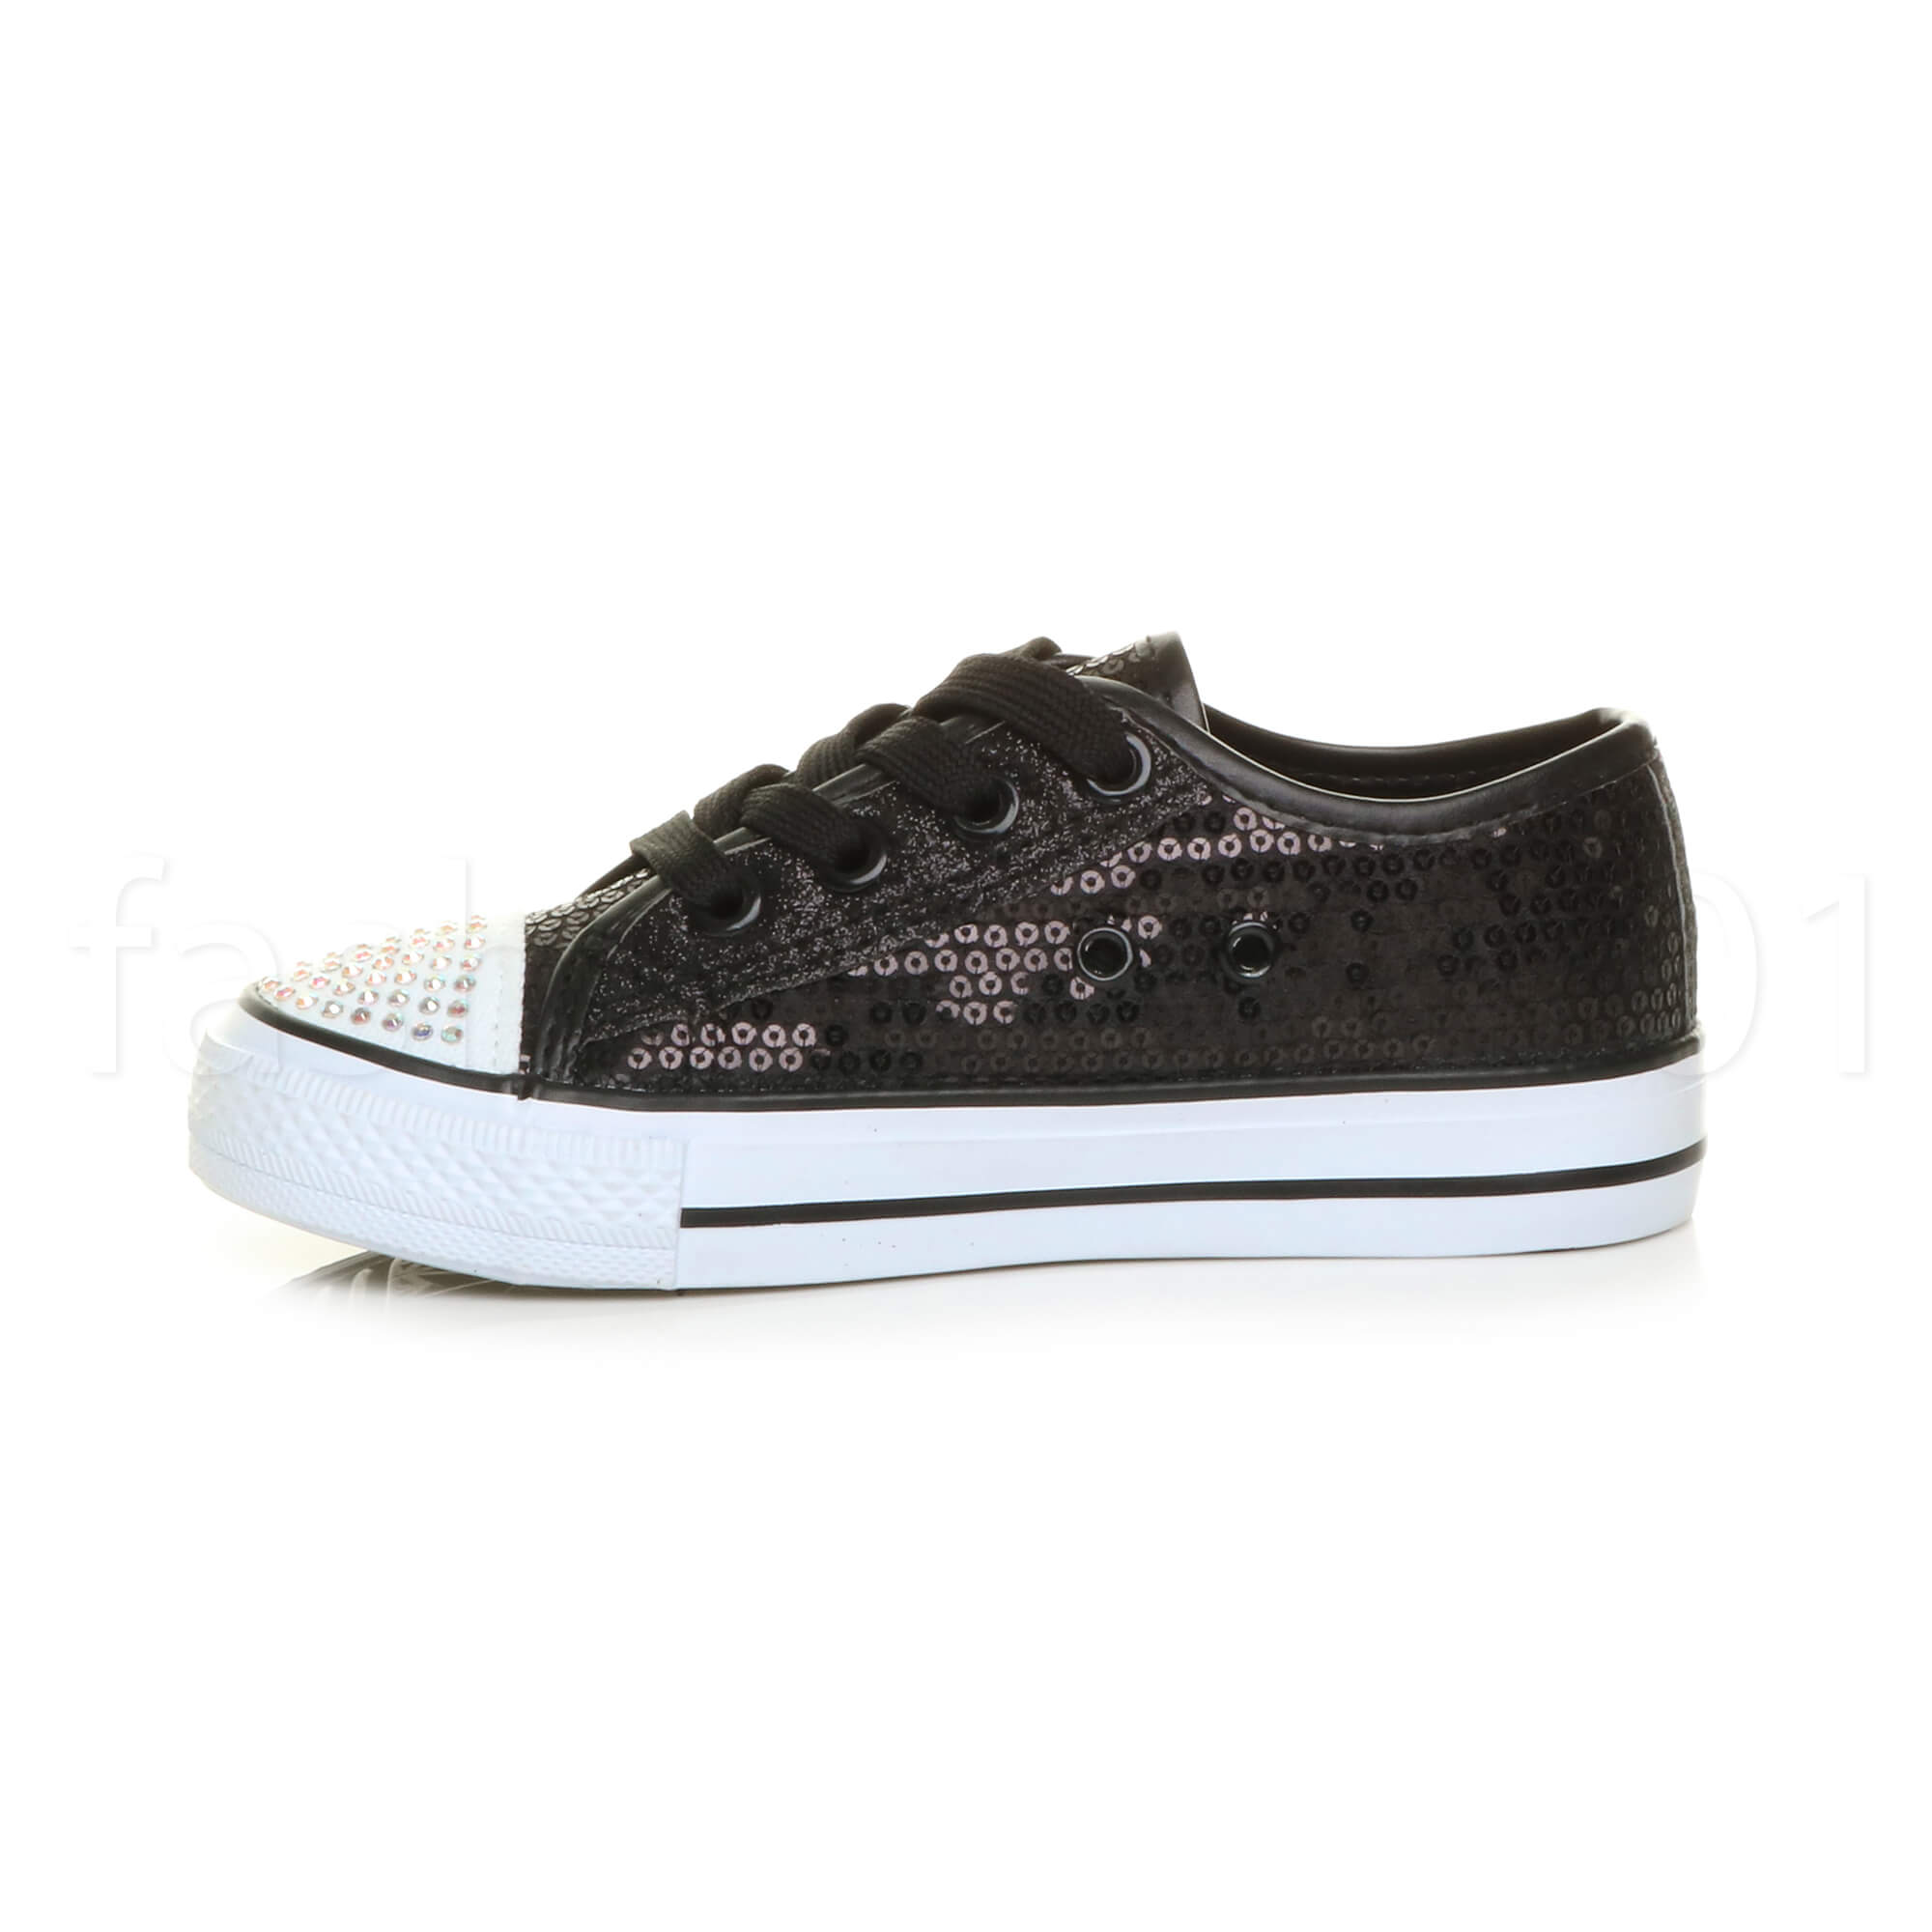 GIRLS-KIDS-CHILDRENS-SPARKLY-SEQUIN-GLITTER-PARTY-PLIMSOLLS-TRAINERS-SHOES-SIZE